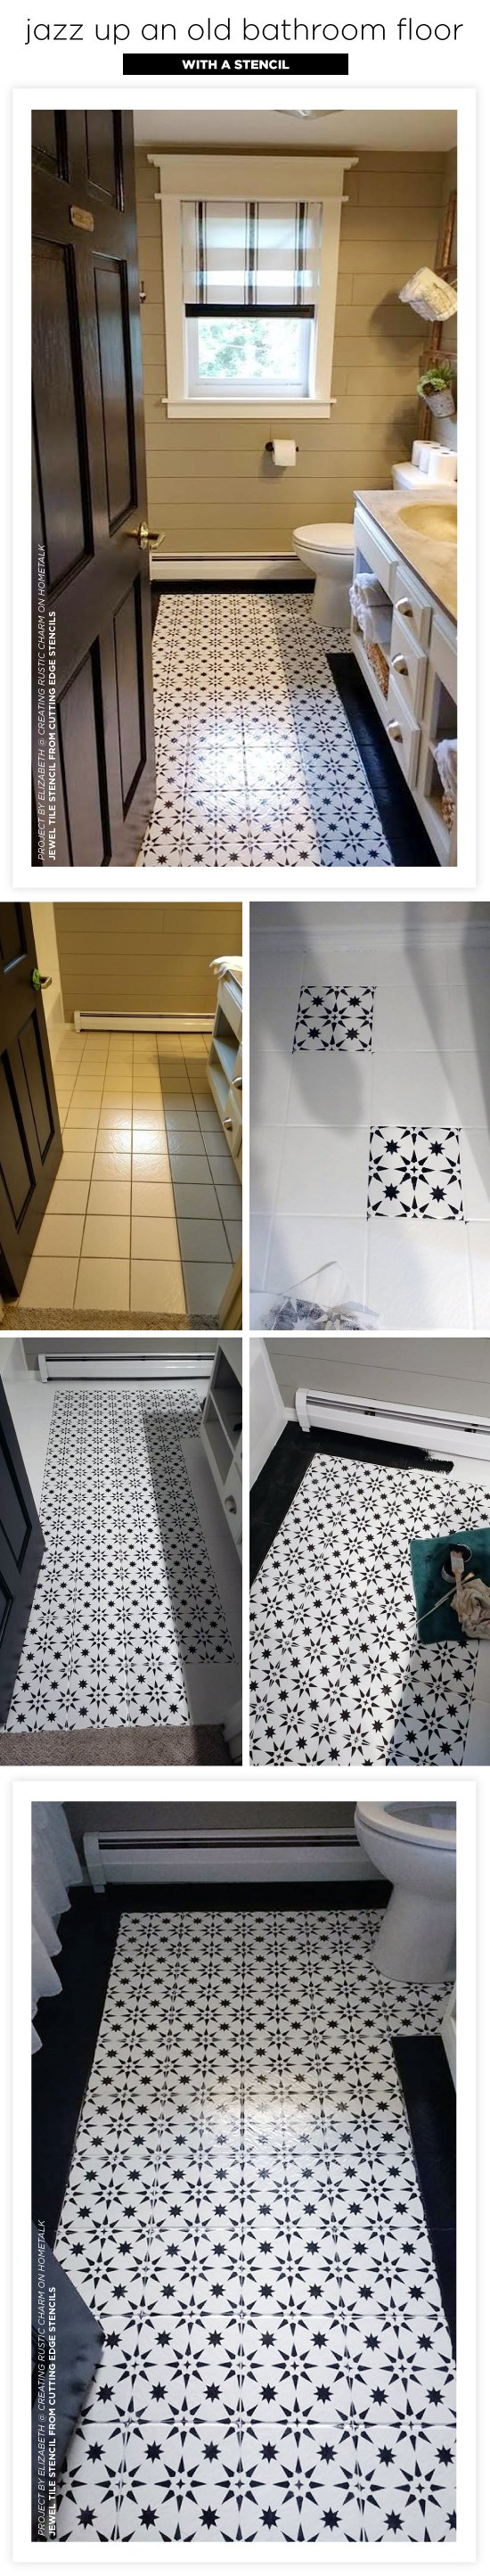 Cutting Edge Stencils shares a ceramic bathroom floor makeover using the Jewel Tile Stencil. http://www.cuttingedgestencils.com/jewel-tile-stencil-cement-tiles-stencils.html